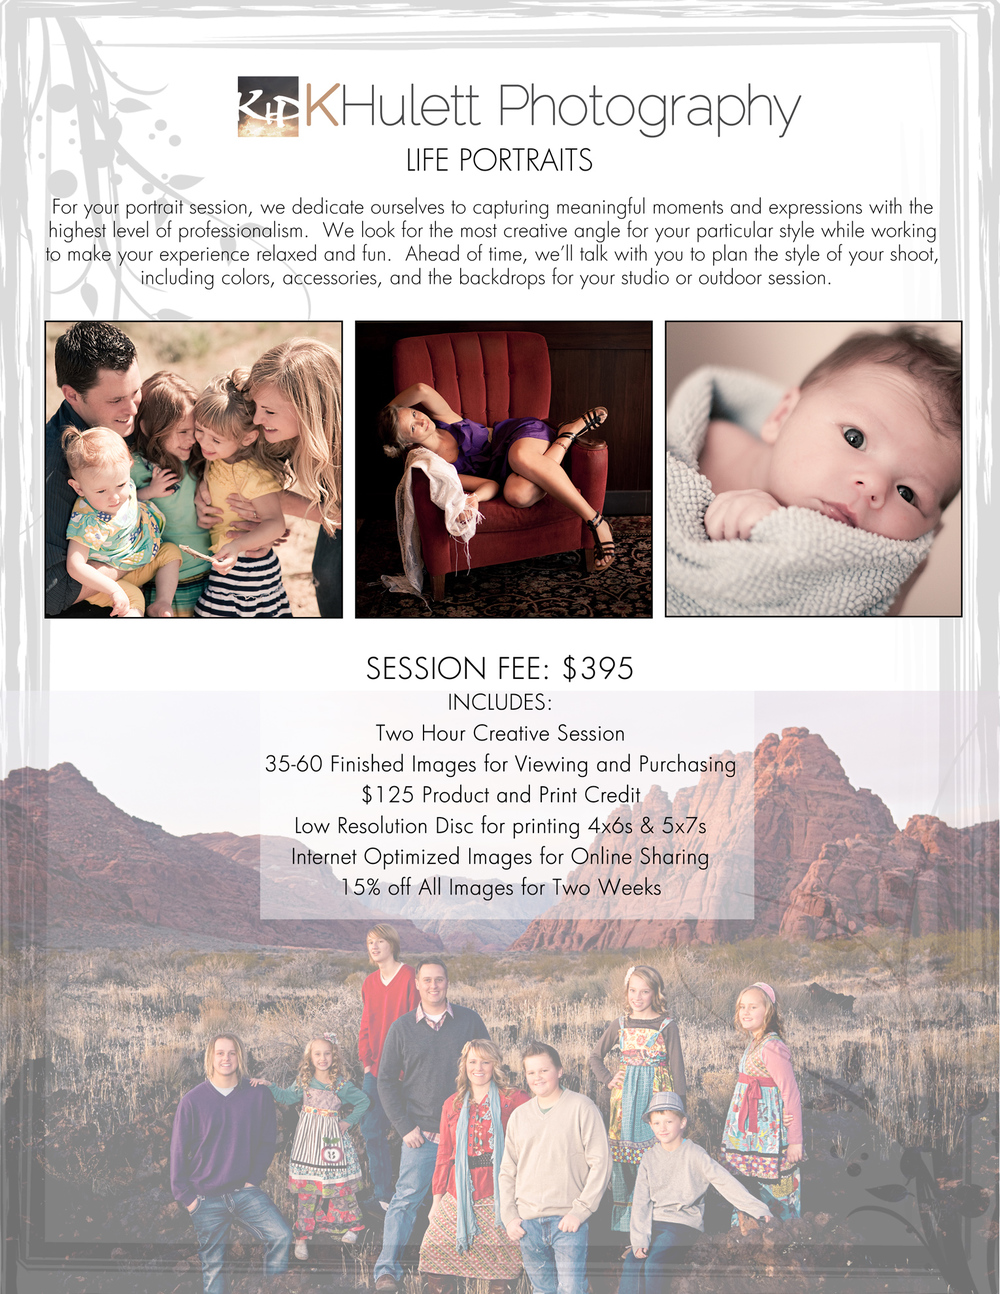 Take $75 off a life portrait session!  Book your session now for your Christmas gifts or receive a Christmas Gift Card that can be used in 2013!